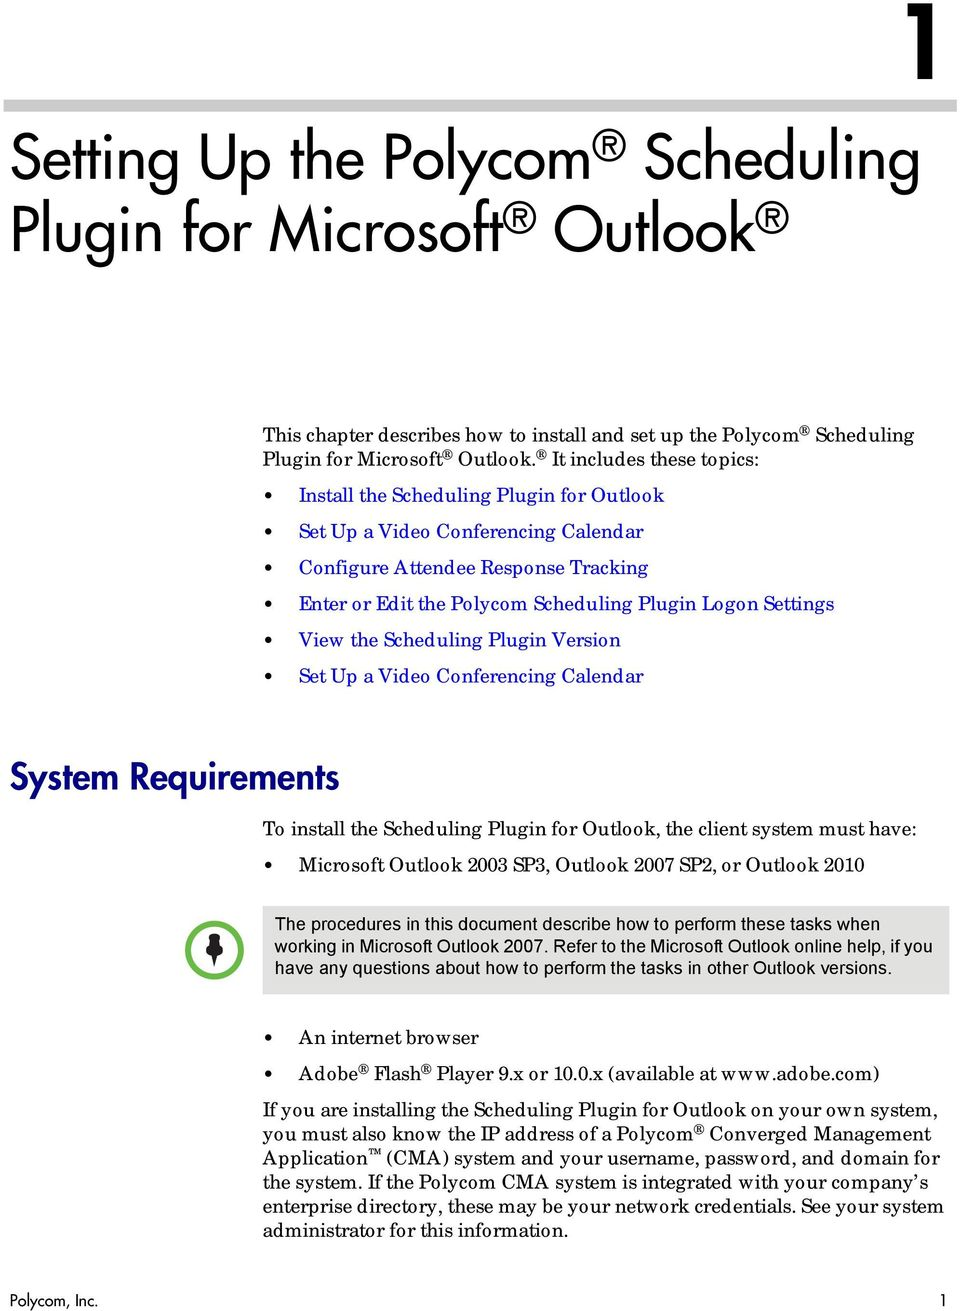 Settings View the Scheduling Plugin Version Set Up a Video Conferencing Calendar System Requirements To install the Scheduling Plugin for Outlook, the client system must have: Microsoft Outlook 2003